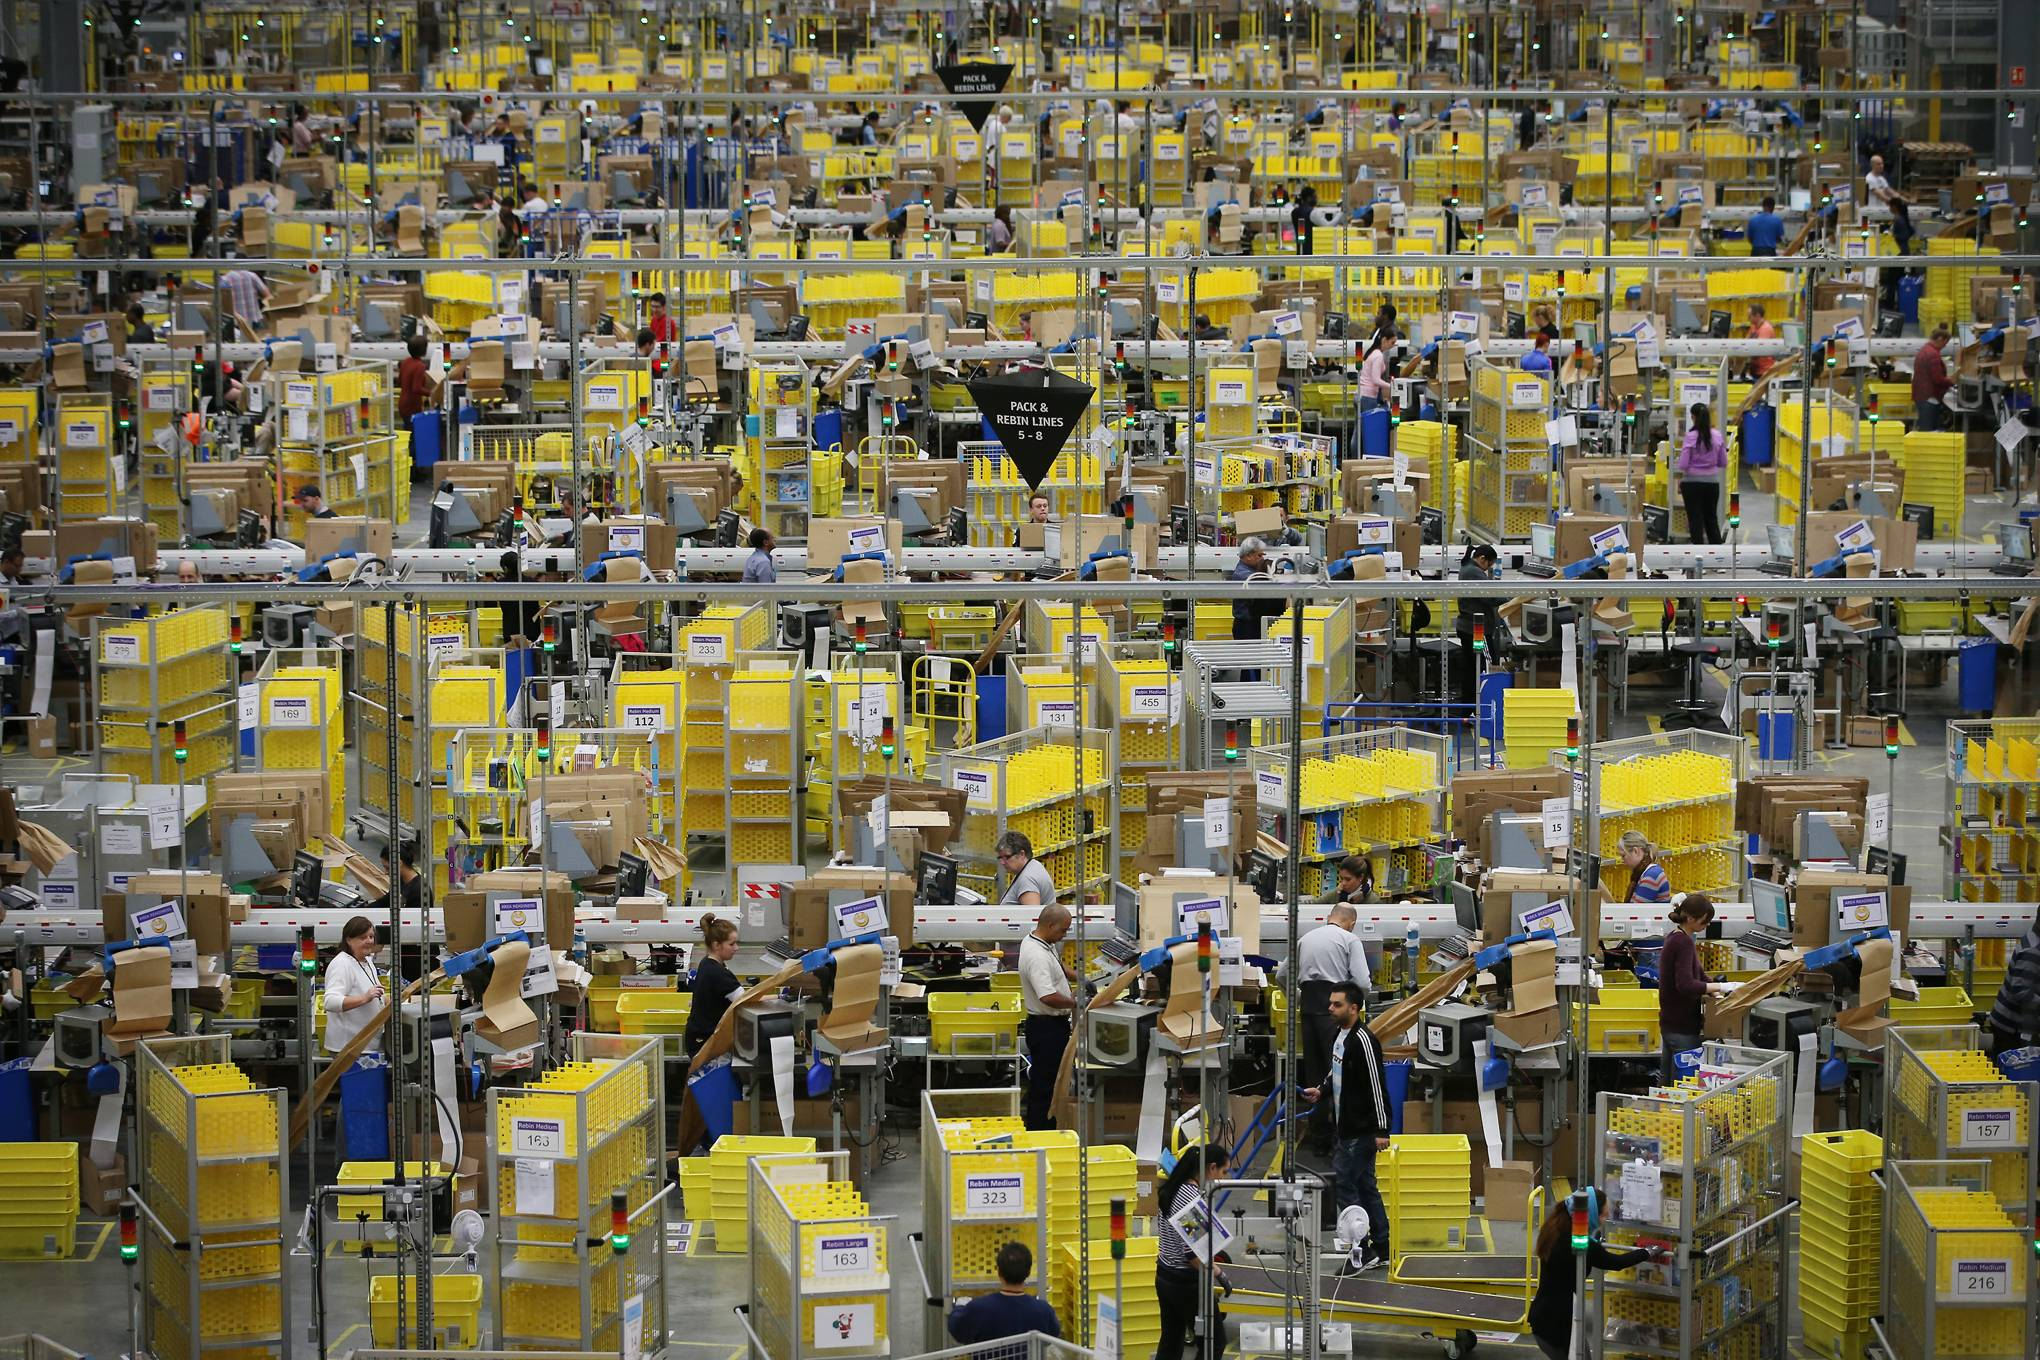 UK shops stockpiling for a no-deal Brexit don't stand a chance